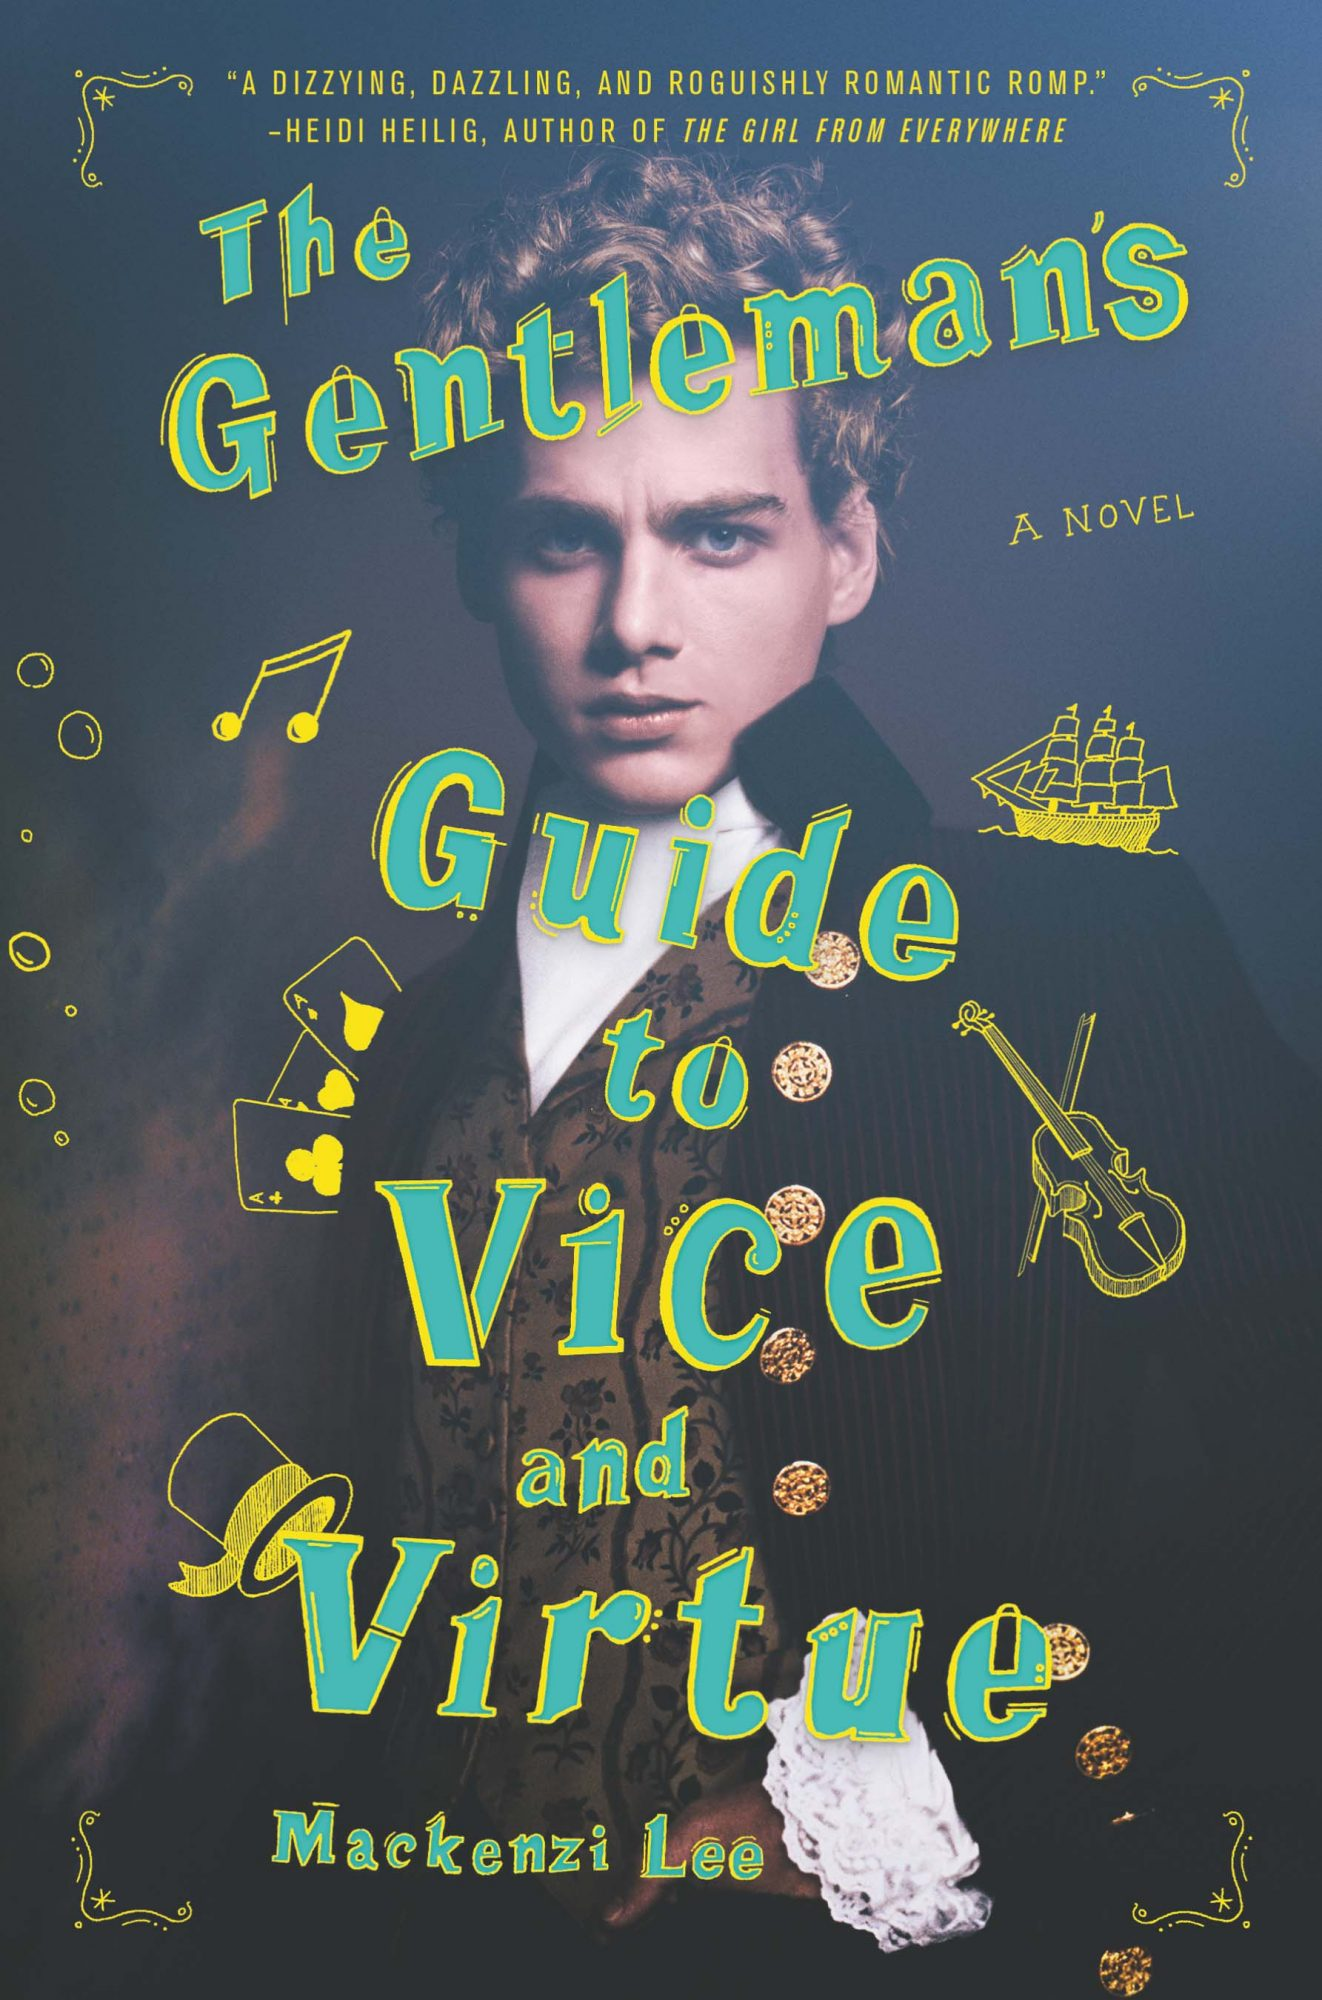 The Gentleman's Guide to Vice and Virtue (6/27/2017)by Mackenzi Lee